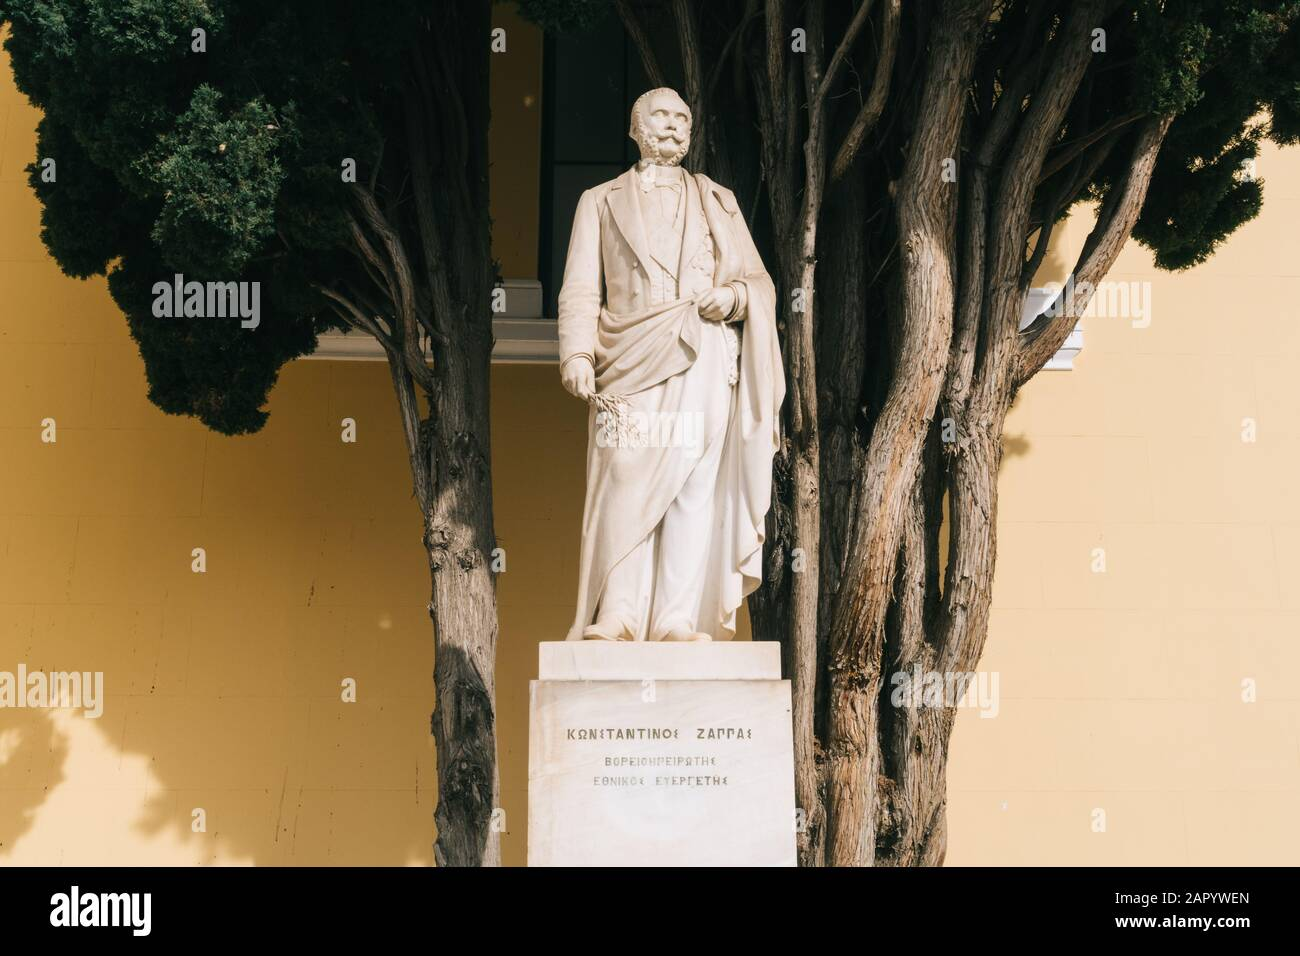 Athens, Greece - Dec 21, 2019: Statue of the Greek entrepreneur Konstantinos Zappas (1814-1892) in front of the Zappeion in Athens, Greece Stock Photo